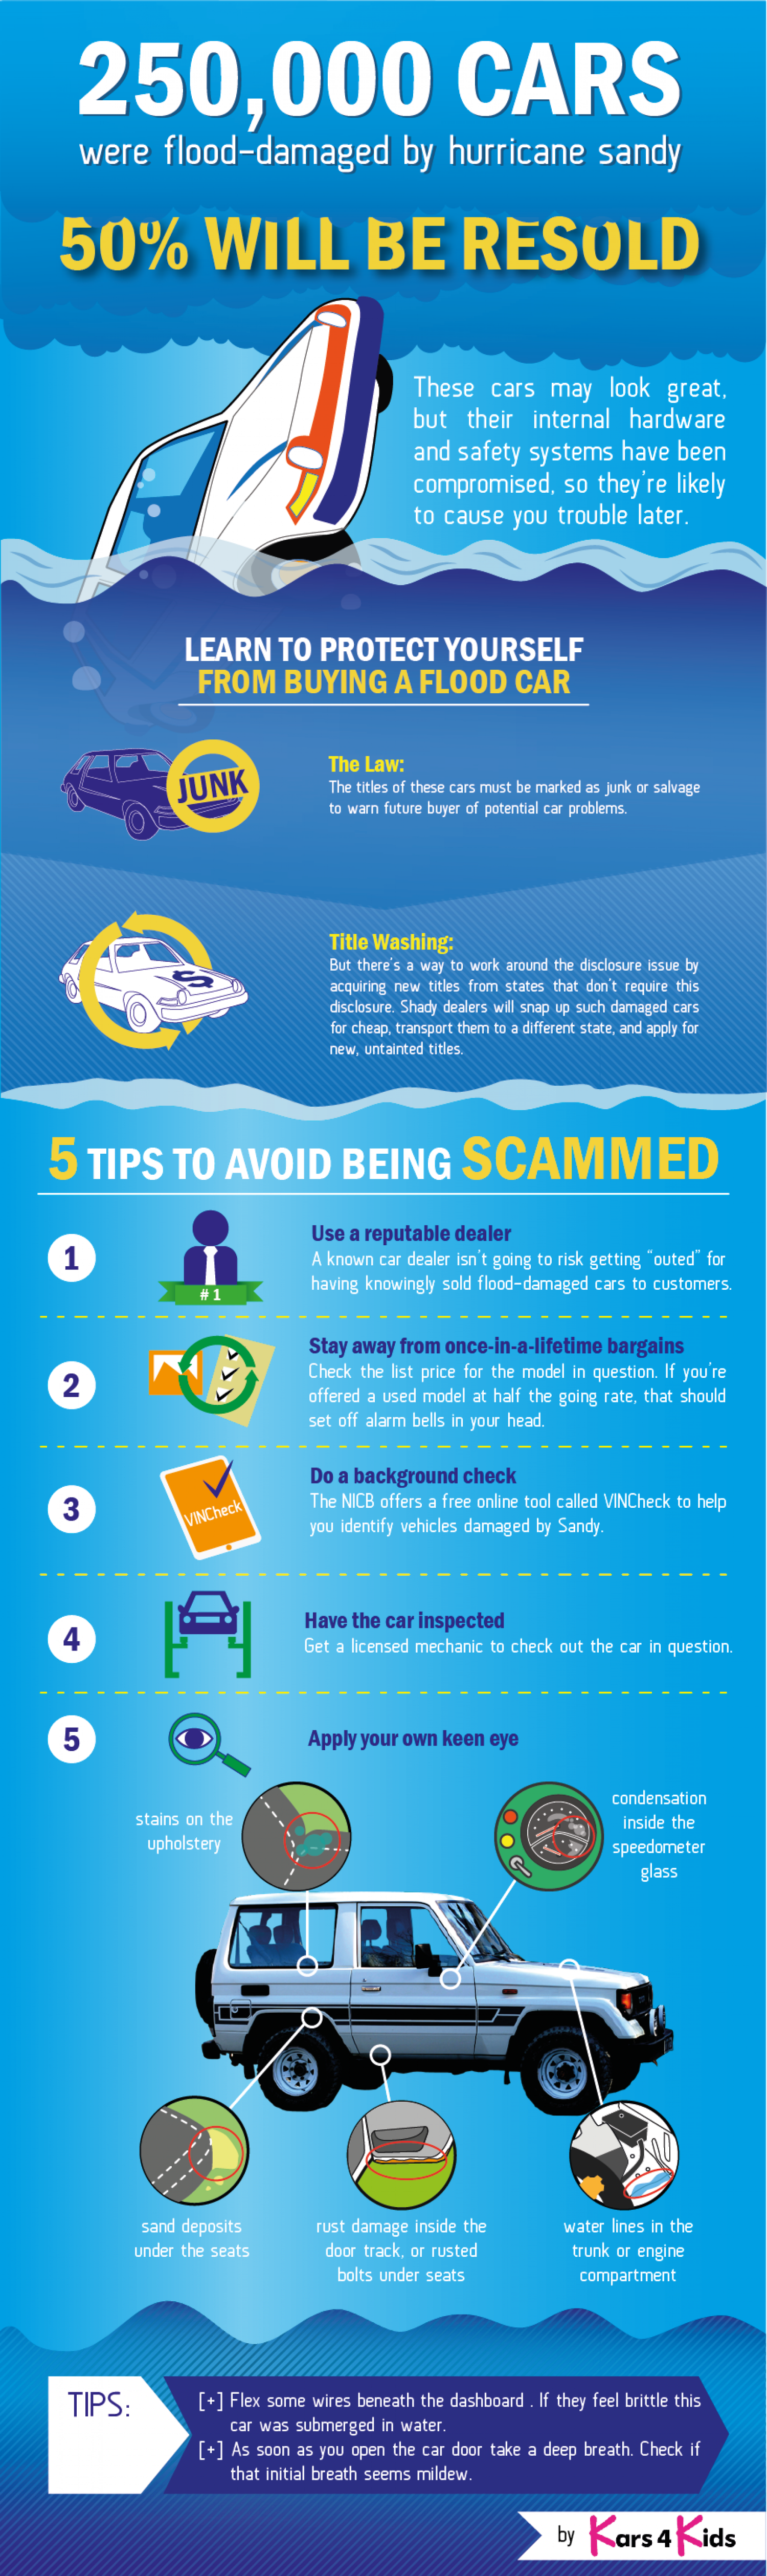 Protect Yourself From Buying A Flood Car Infographic